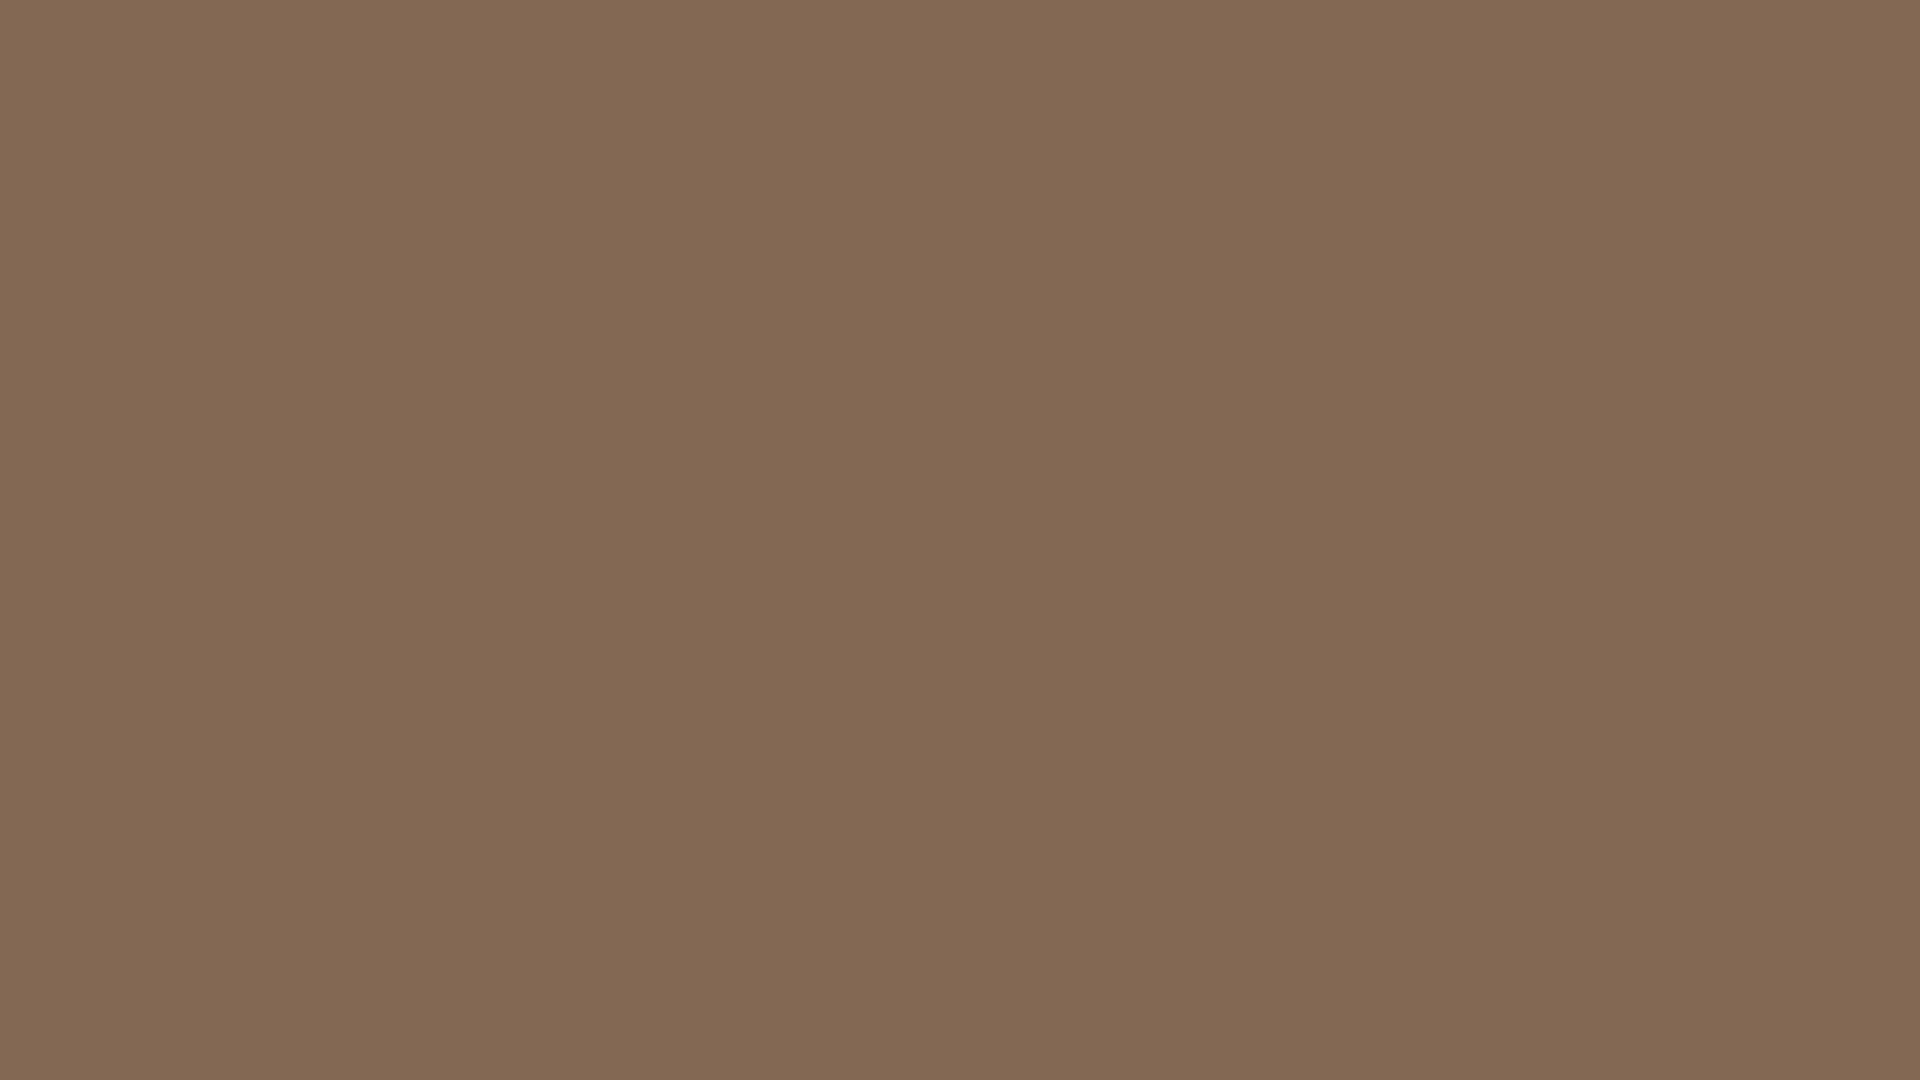 1920x1080 Pastel Brown Solid Color Background